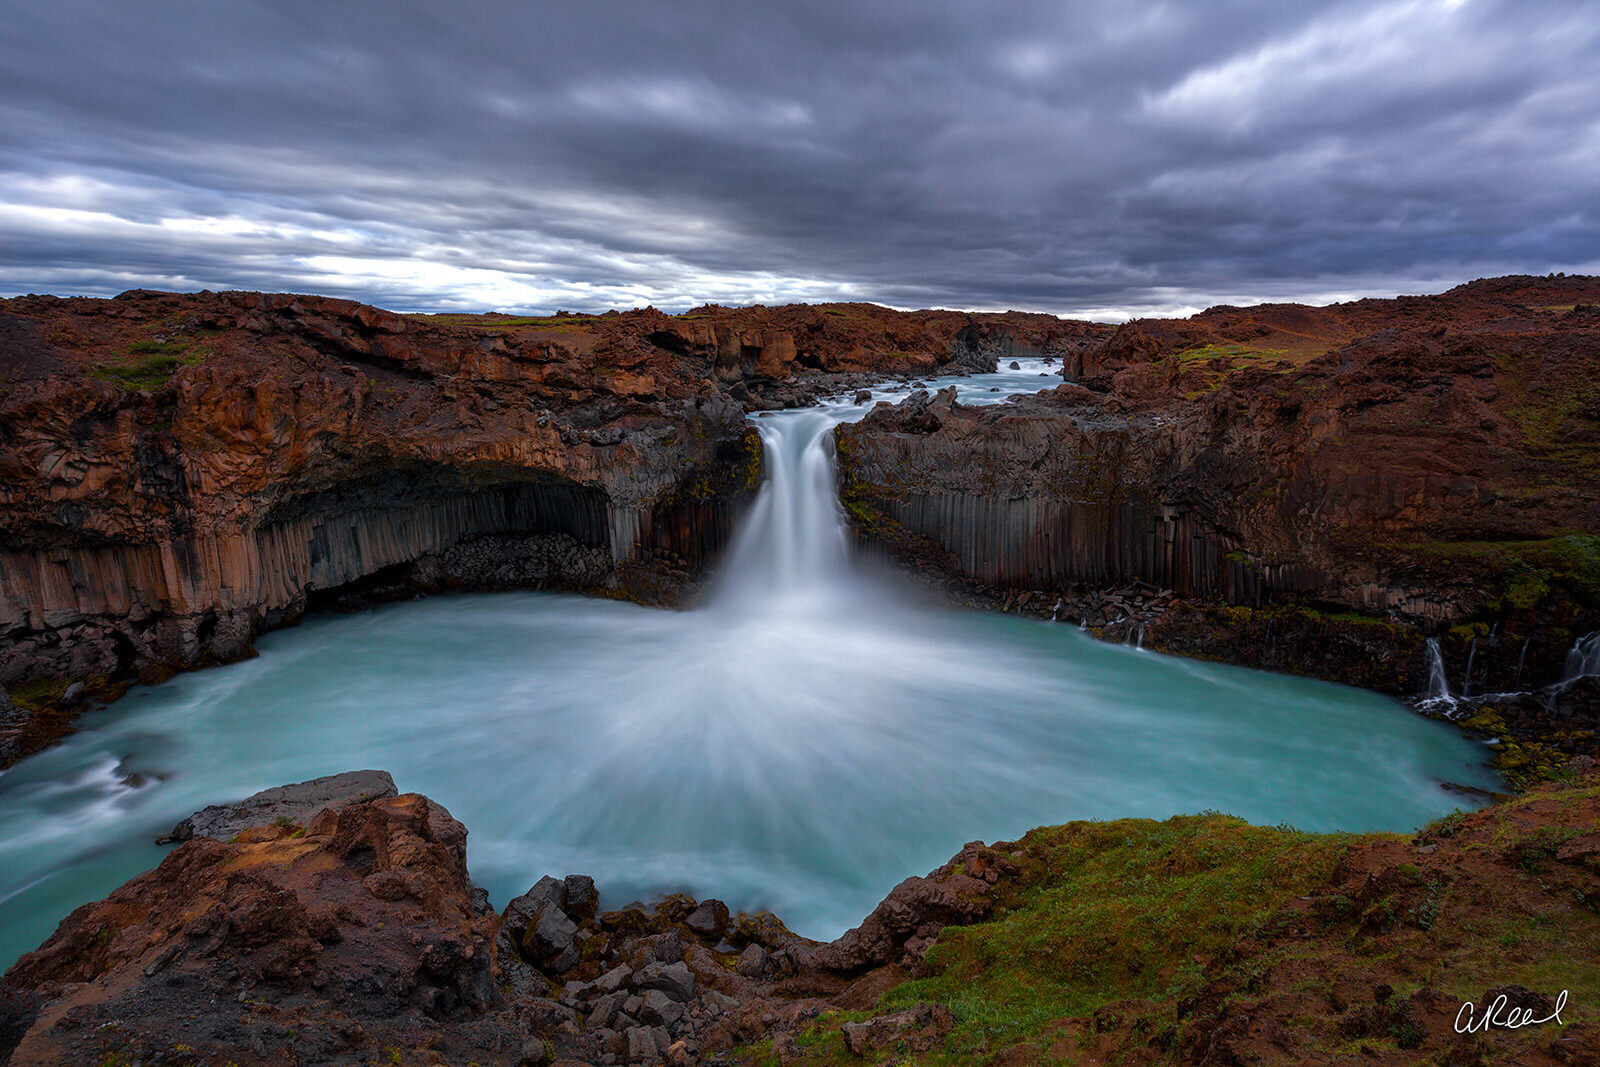 Transform your space with Aaron Reed's limited edition photography print, Basaltic, from his Iceland Nature Photography collection...